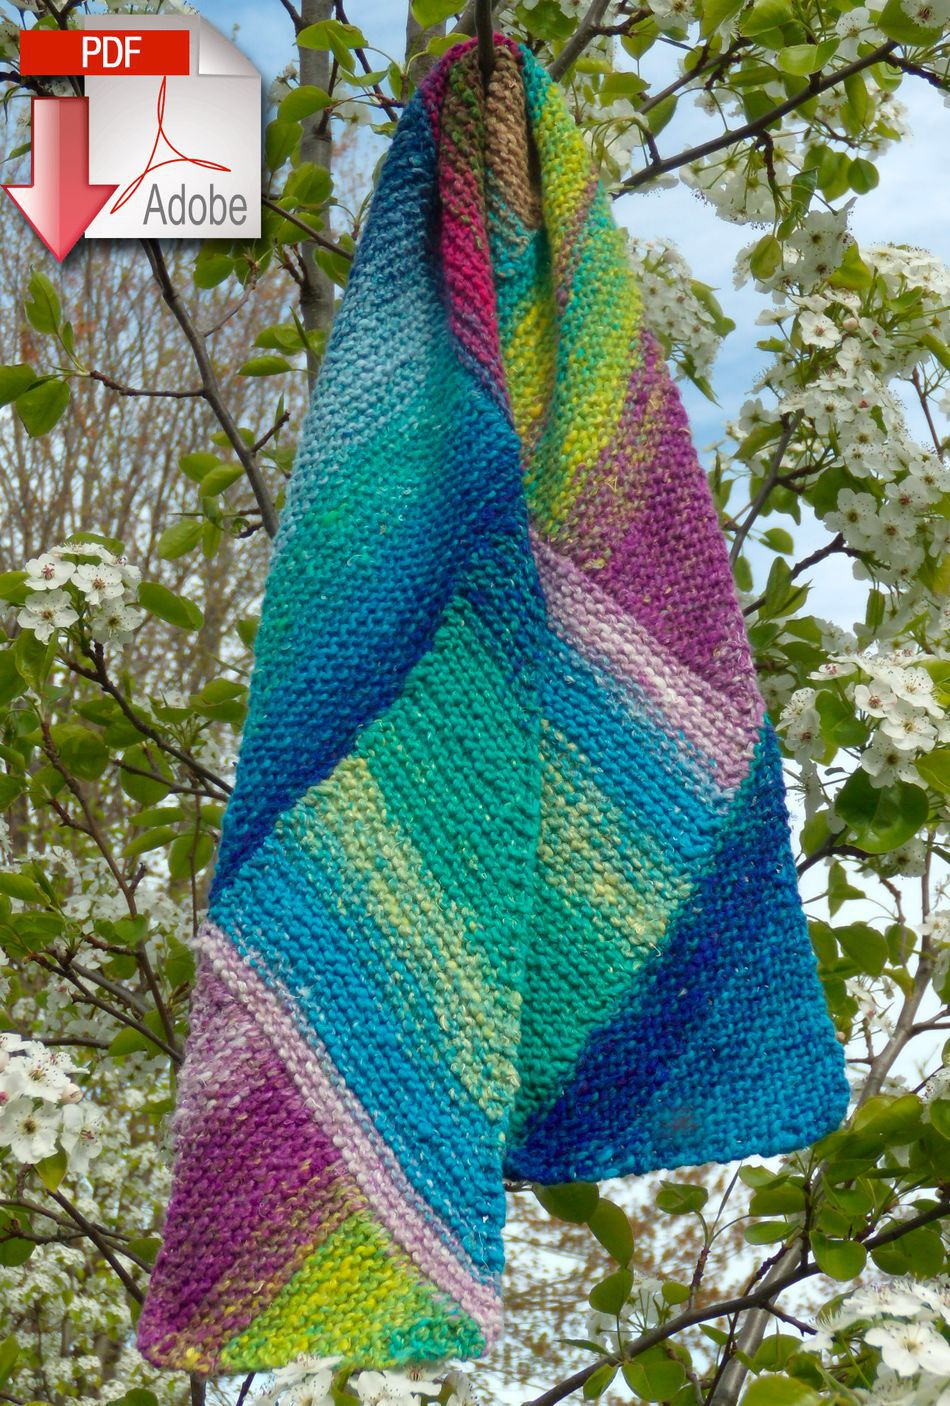 Knitting Pattern For Noro Wool : Multi-Directional Scarf - Noro Taiyo - Pattern download, Knitting Pattern - H...